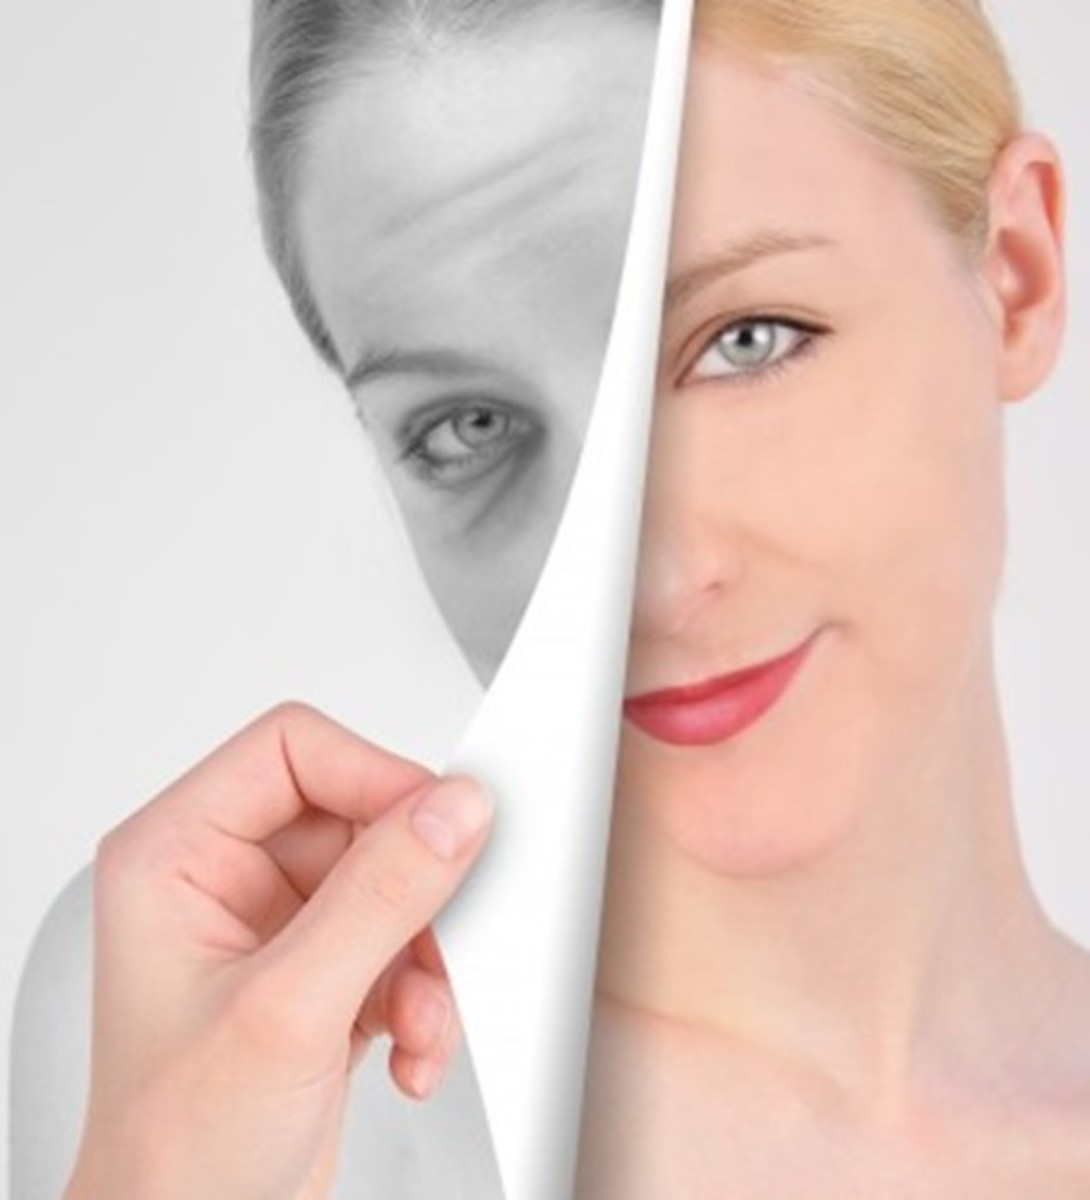 Could Photofacial treatments turn back time for you or give you back a blemish-free complexion?